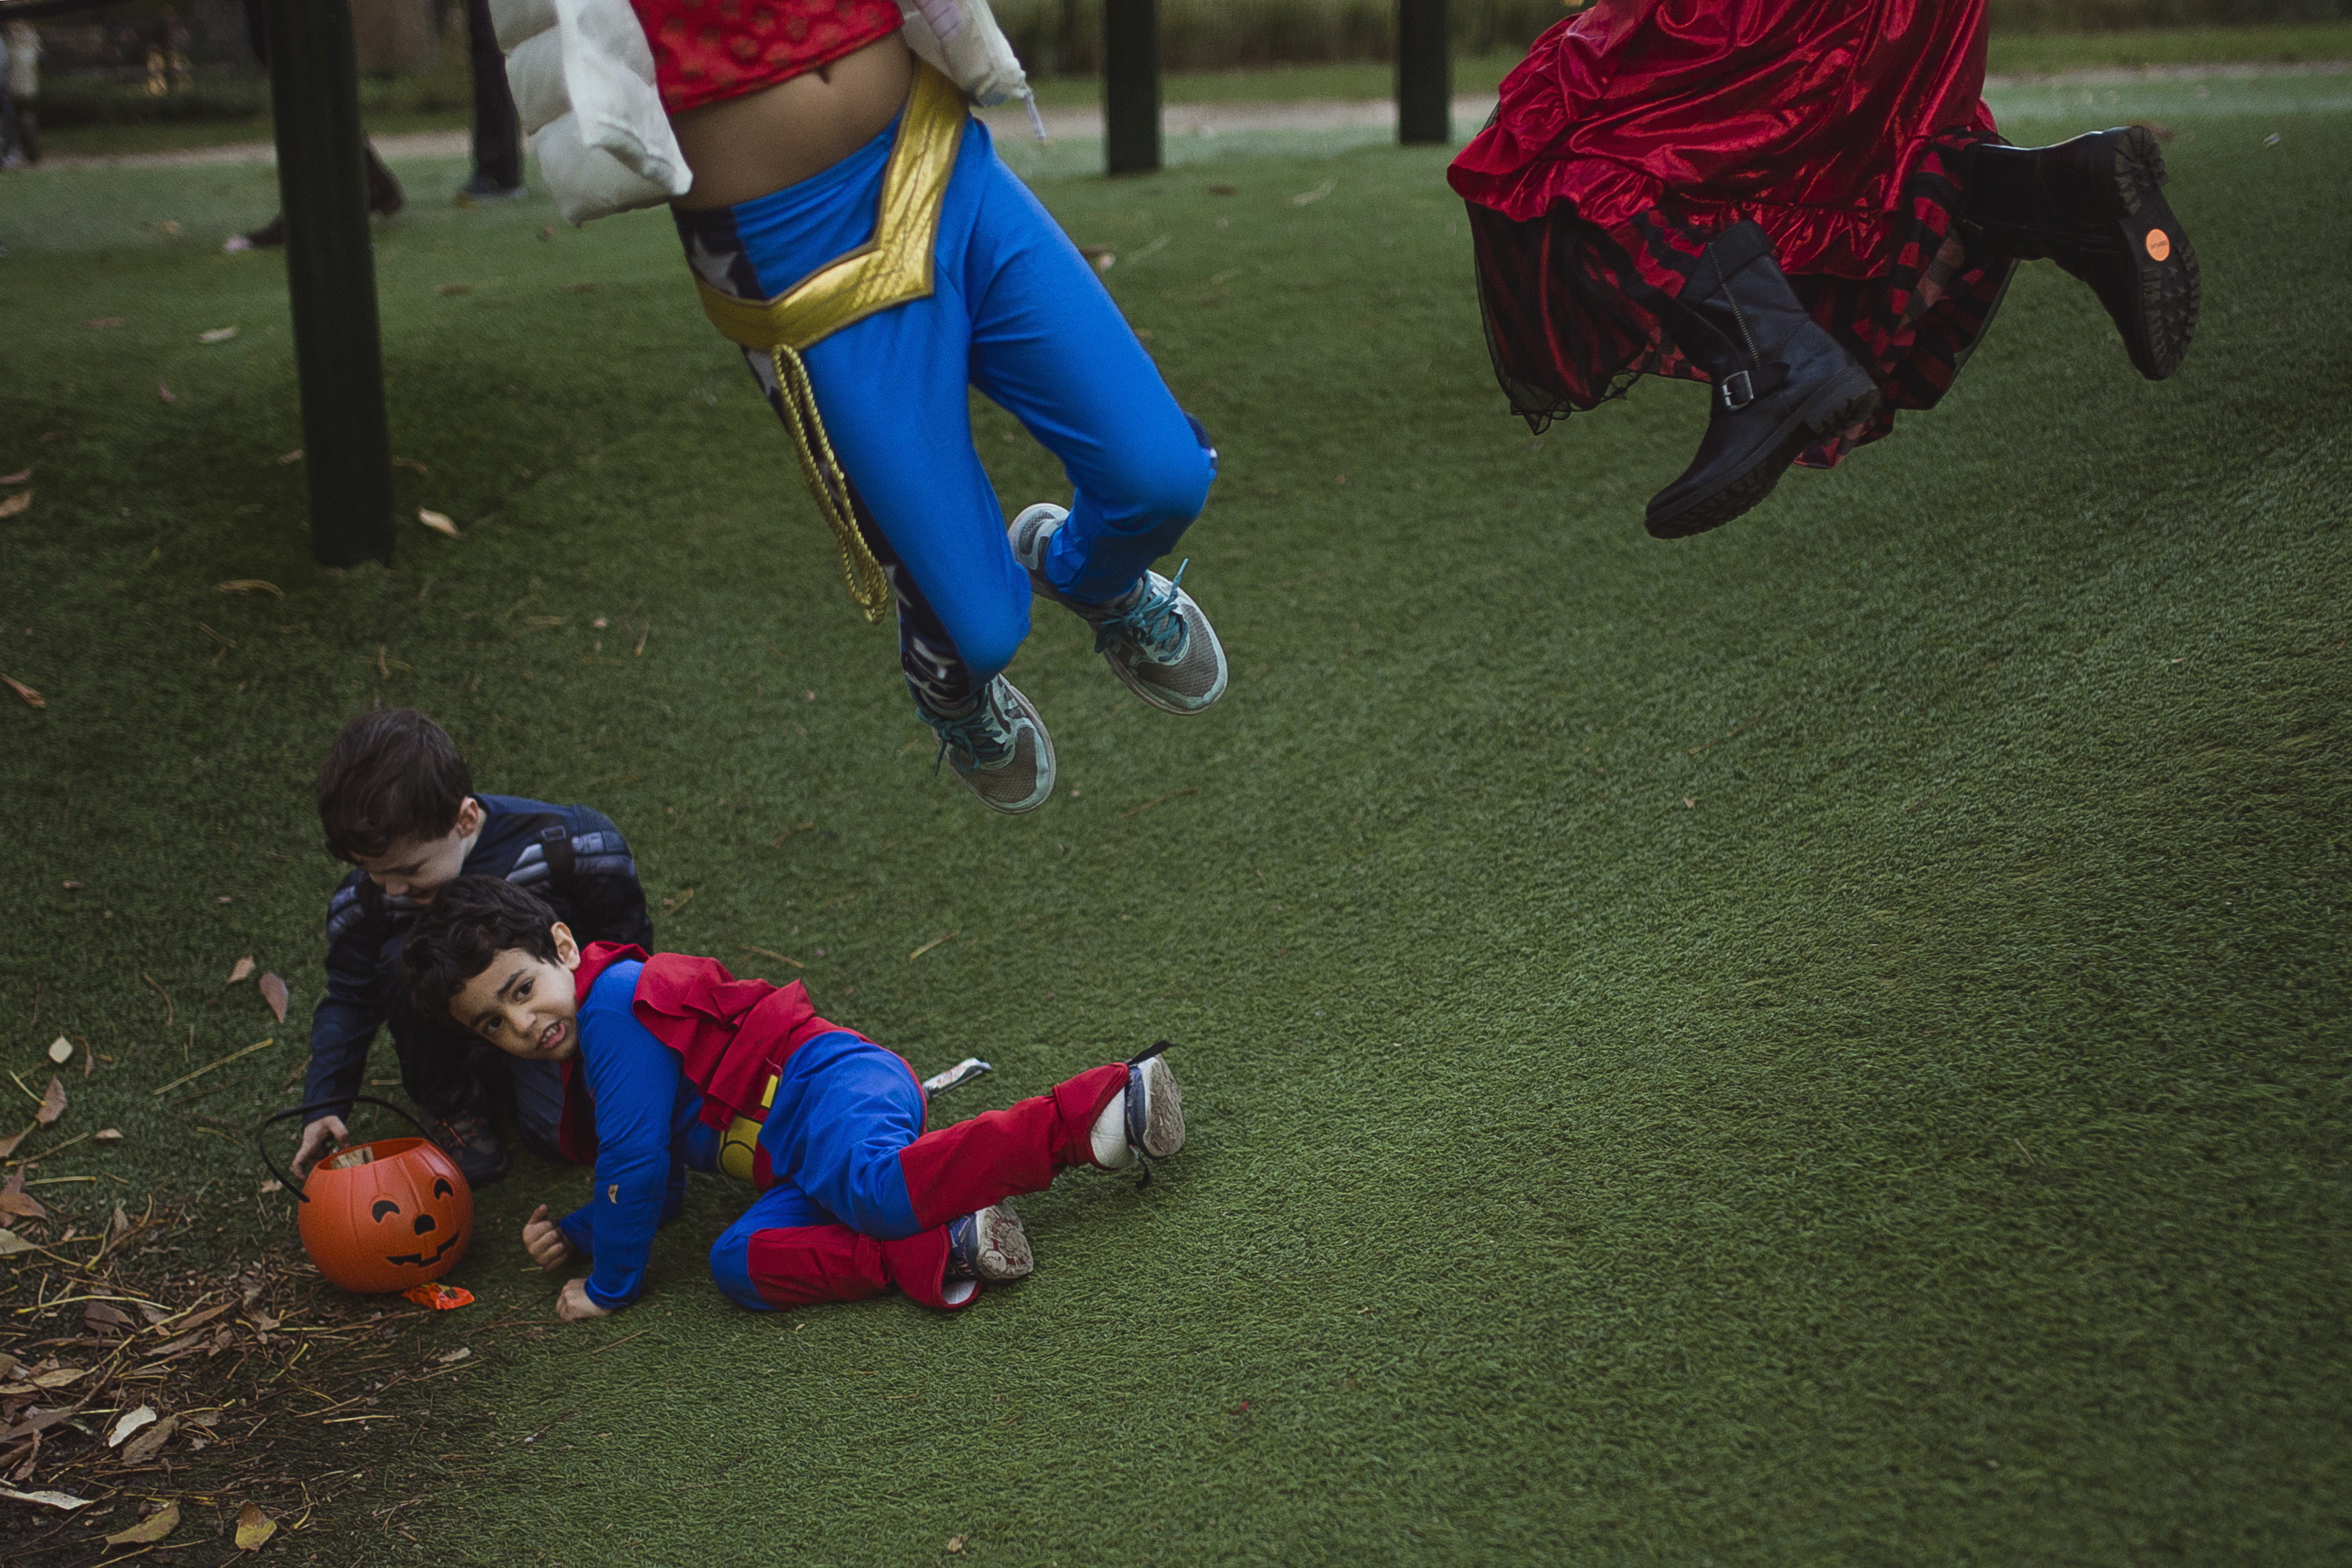 """<div class=""""meta image-caption""""><div class=""""origin-logo origin-image none""""><span>none</span></div><span class=""""caption-text"""">Children wearing costumes play at Washington Square Park before the Greenwich Village Halloween Parade in New York, Monday, Oct. 31, 2016. (AP Photo/Andres Kudacki)</span></div>"""